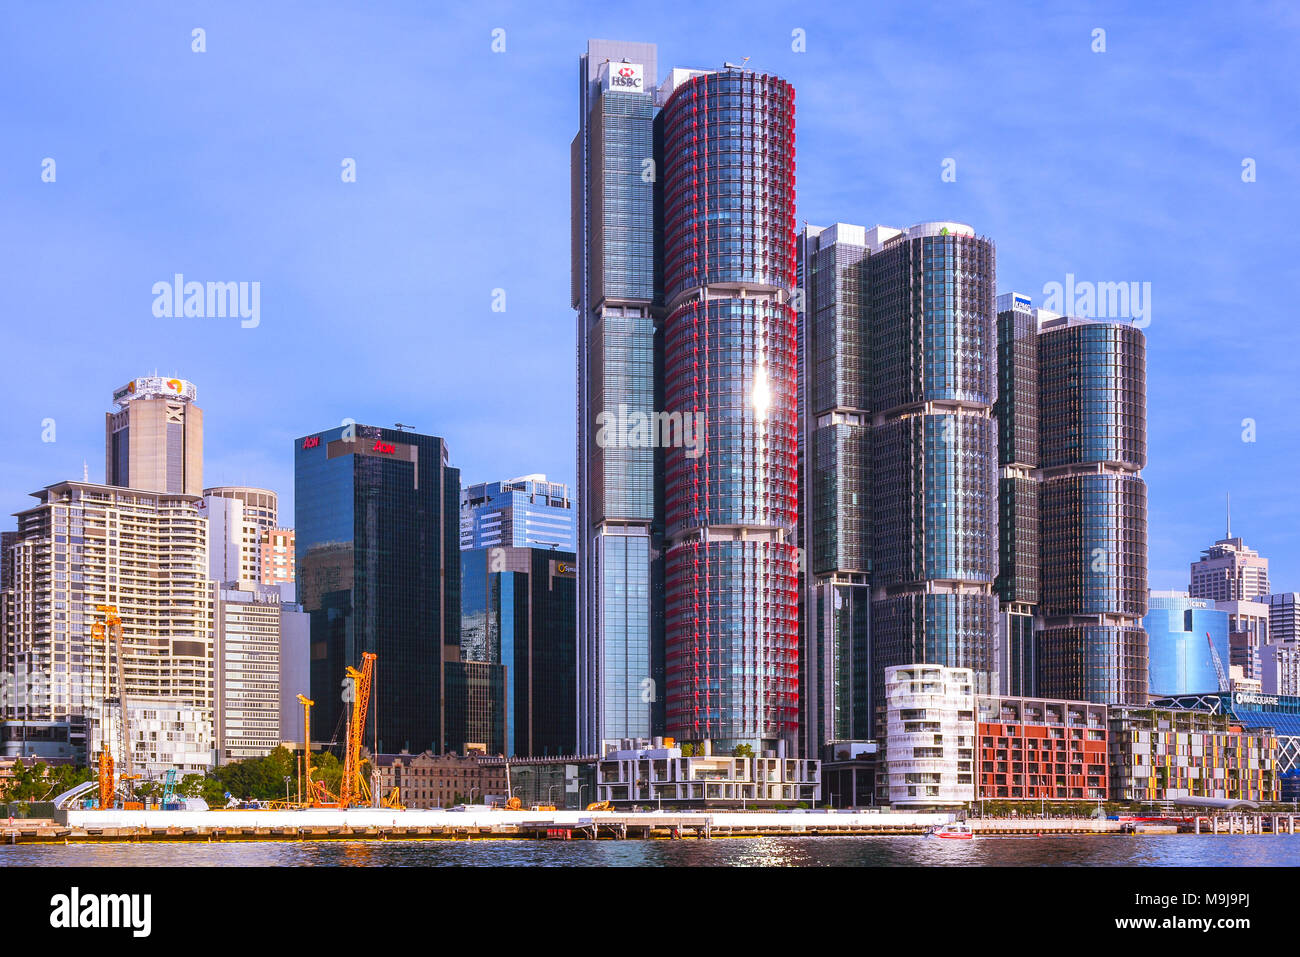 High Rises in Barangarro suburb of Sydney, by the Sydney Harbour - Stock Image